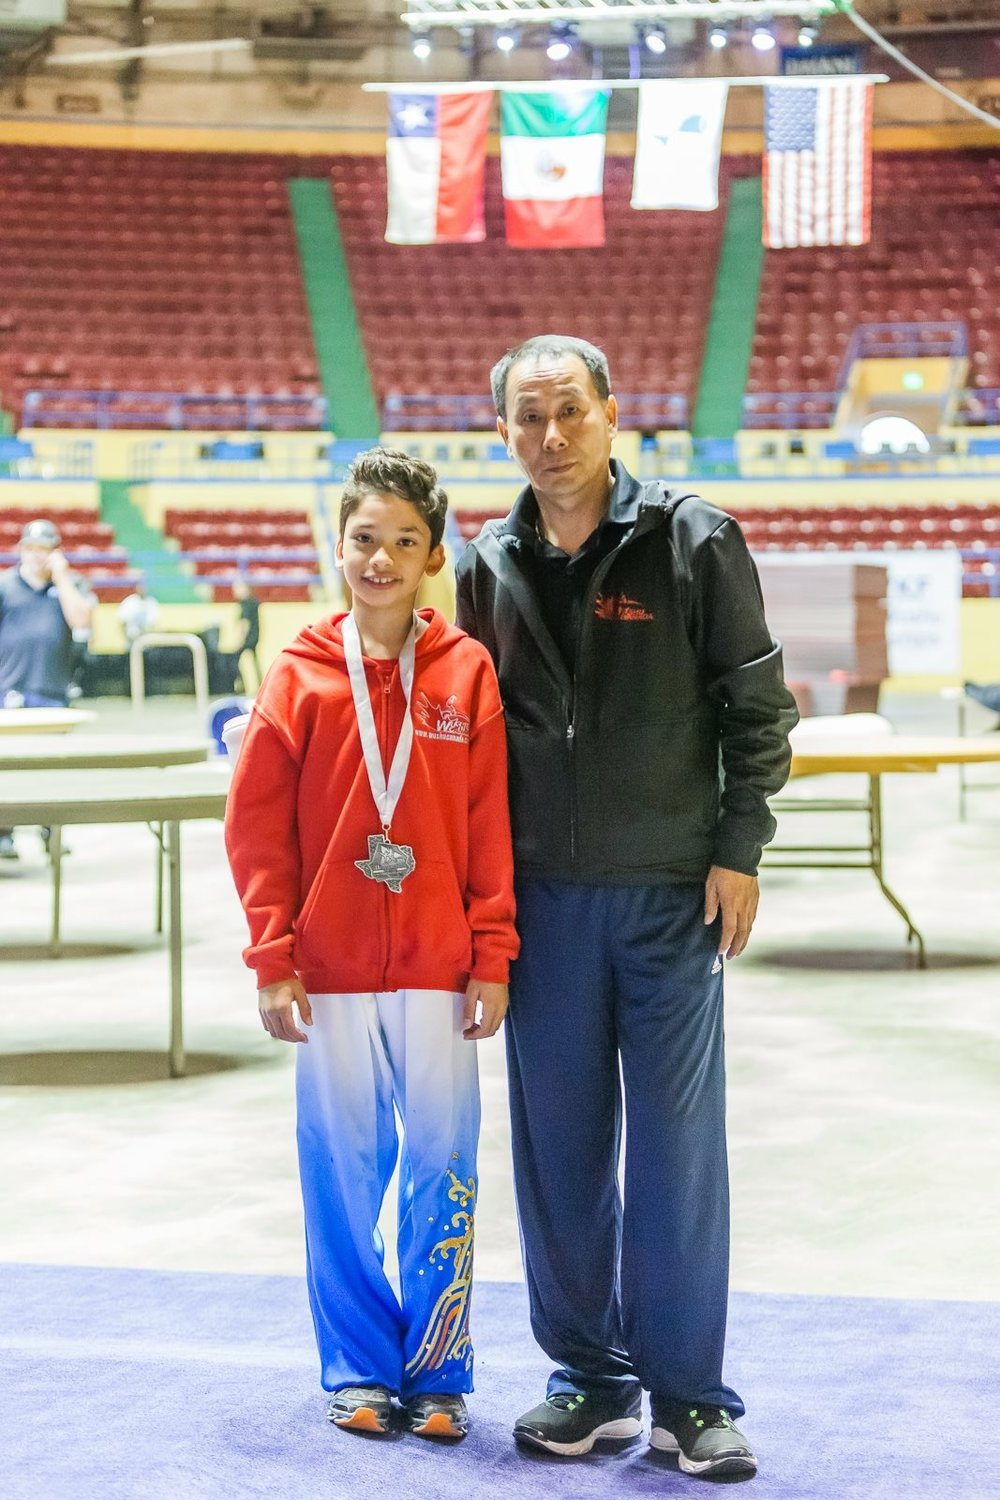 Champ and Coach, 2016 PanAm